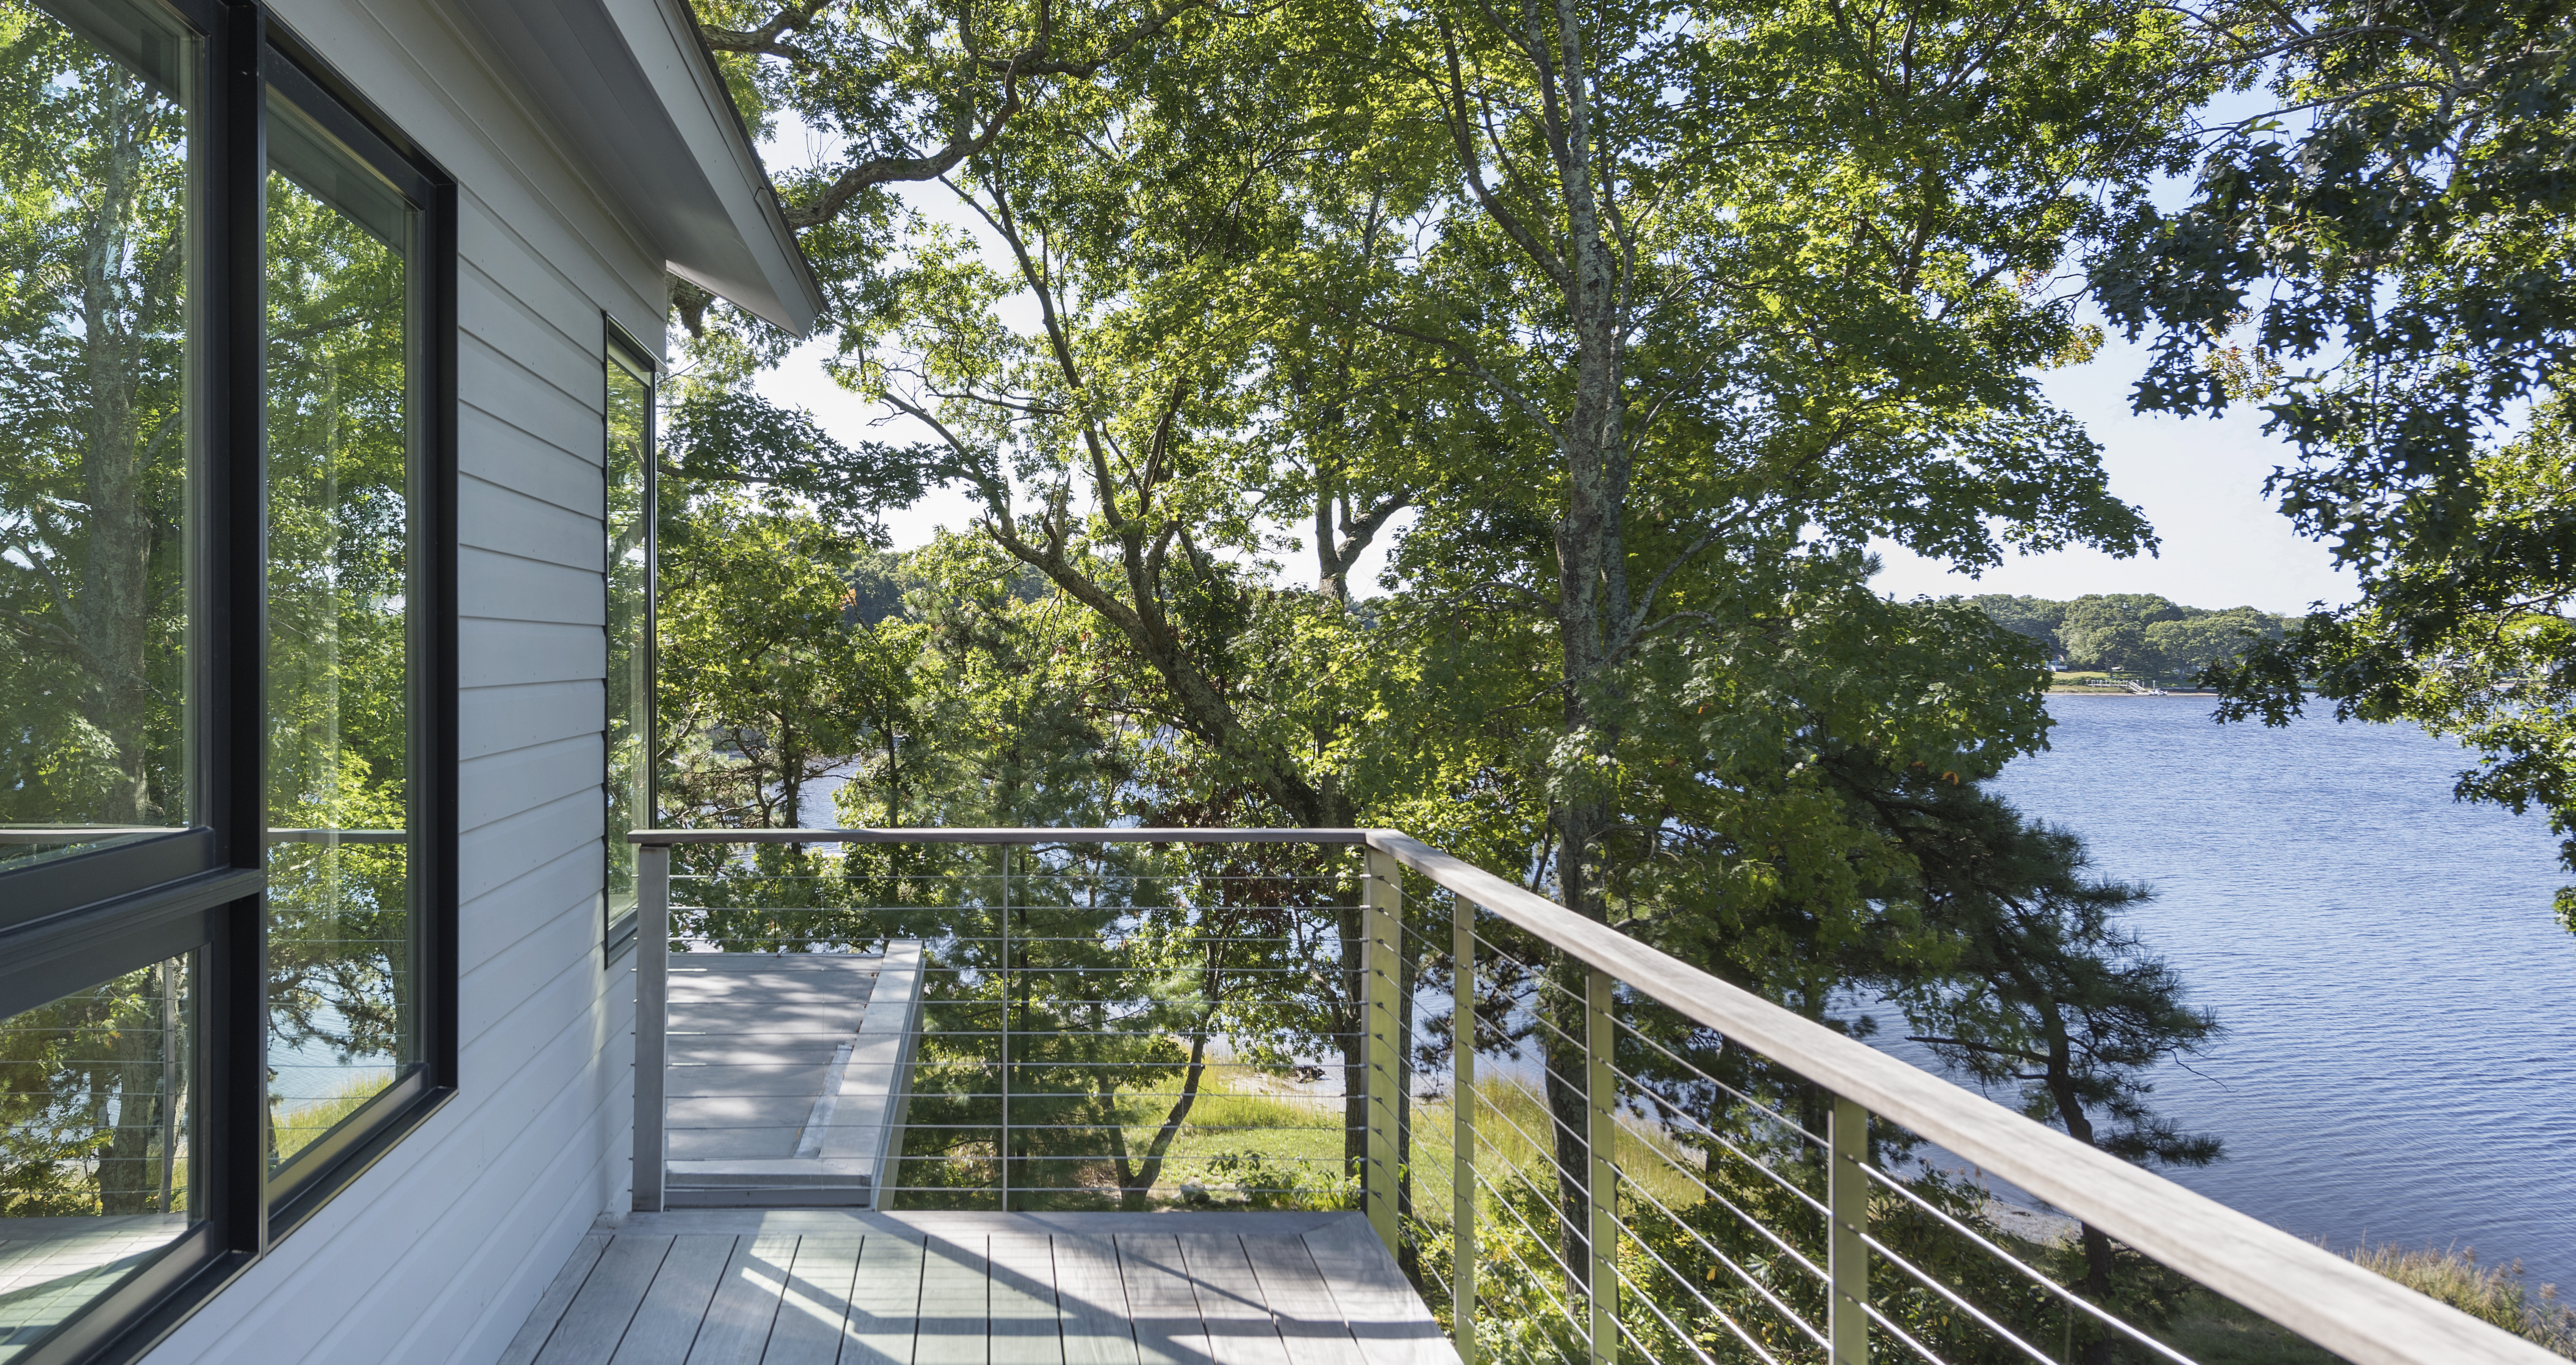 Kite_1532_Hundred Acre Cove_Greenspan Residence_Exterior_Day_Deck